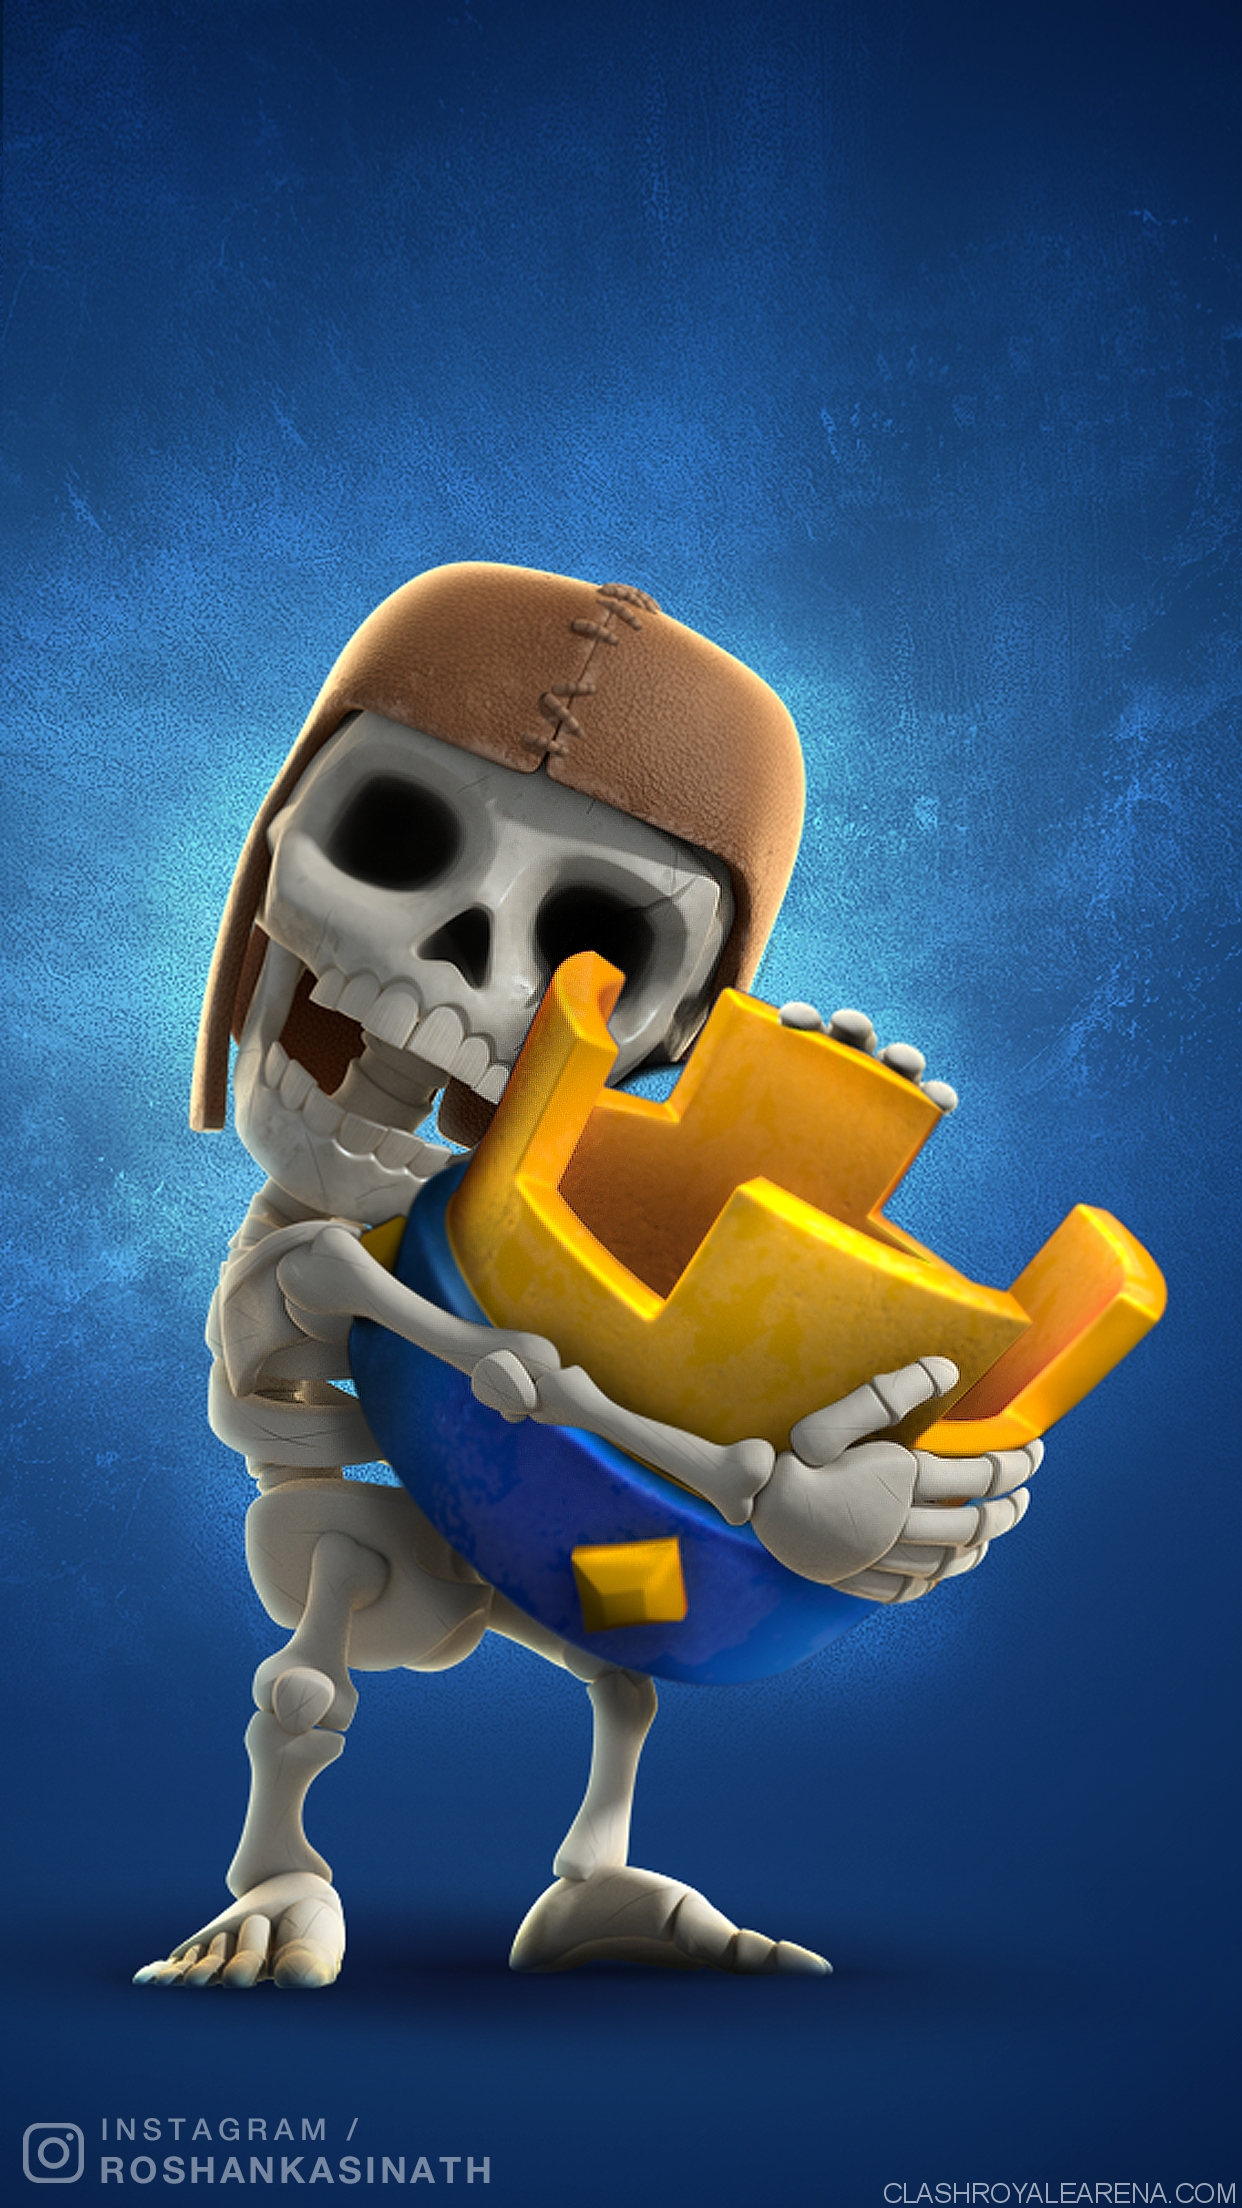 10 New Clash Royale Phone Wallpaper FULL HD 1920×1080 For PC Desktop